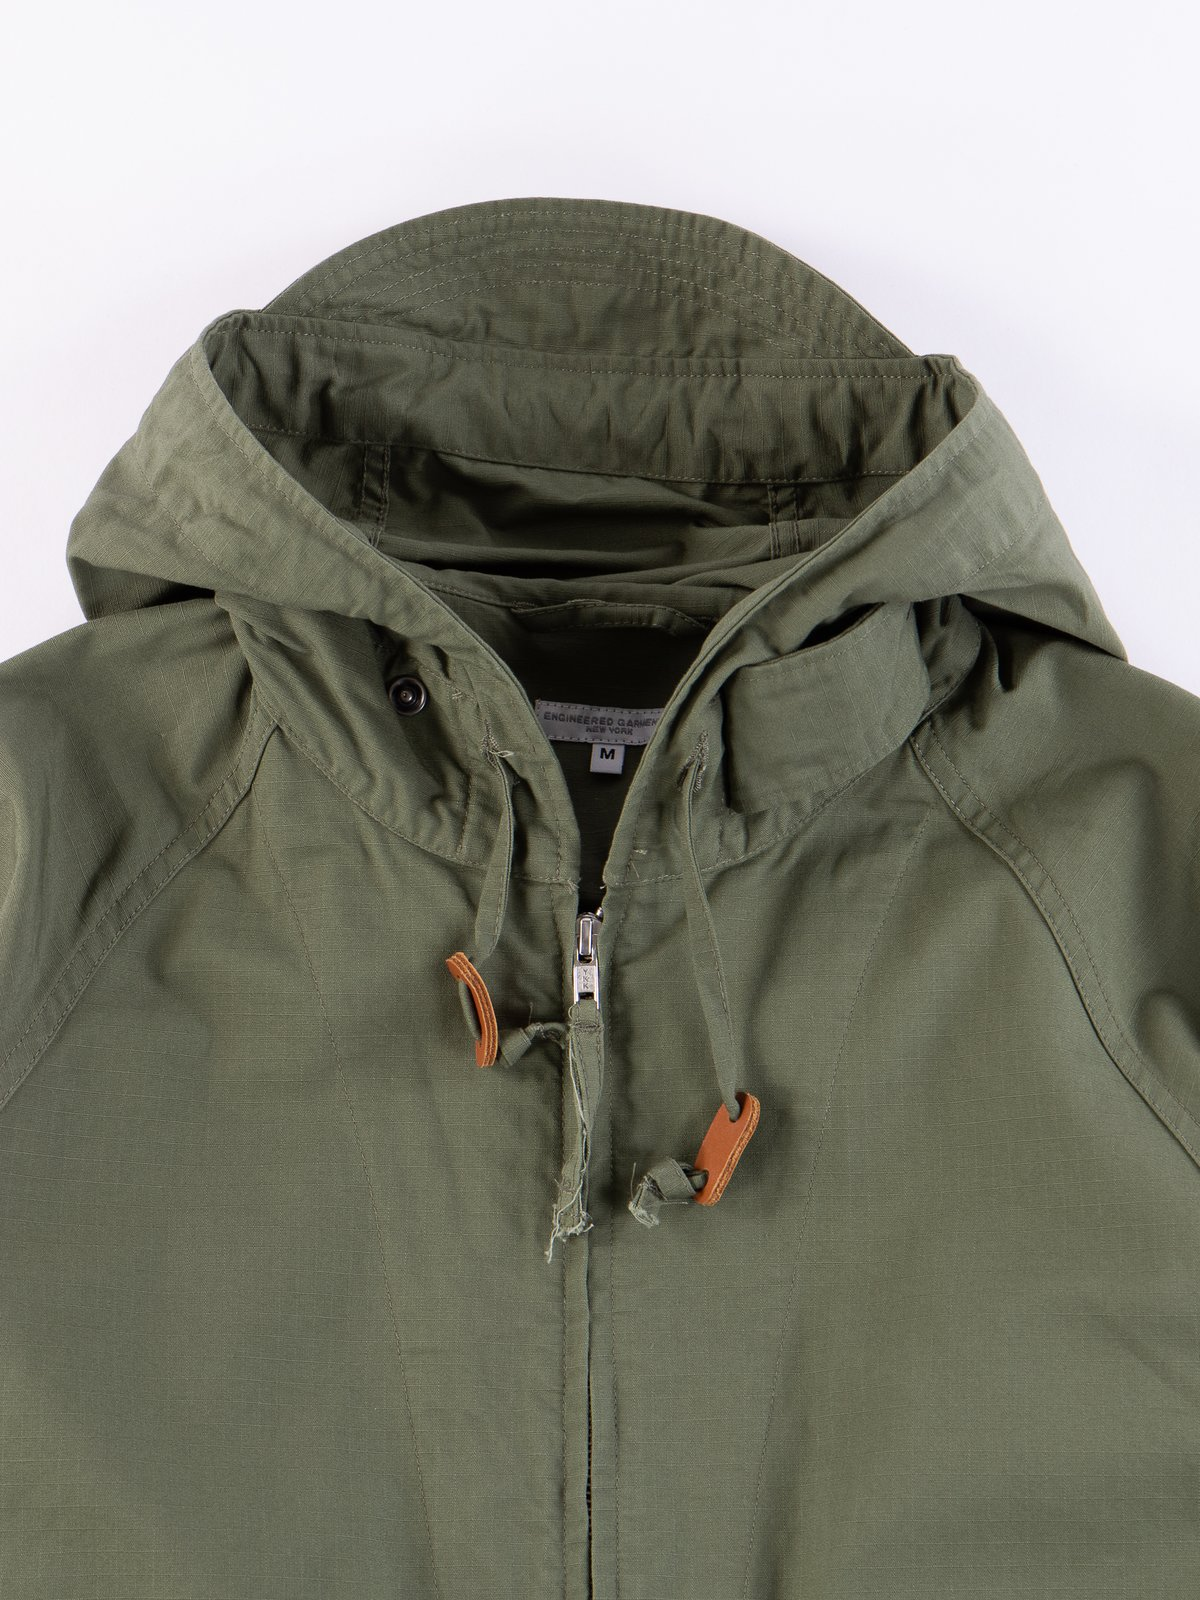 Olive Cotton Ripstop Atlantic Parka - Image 3